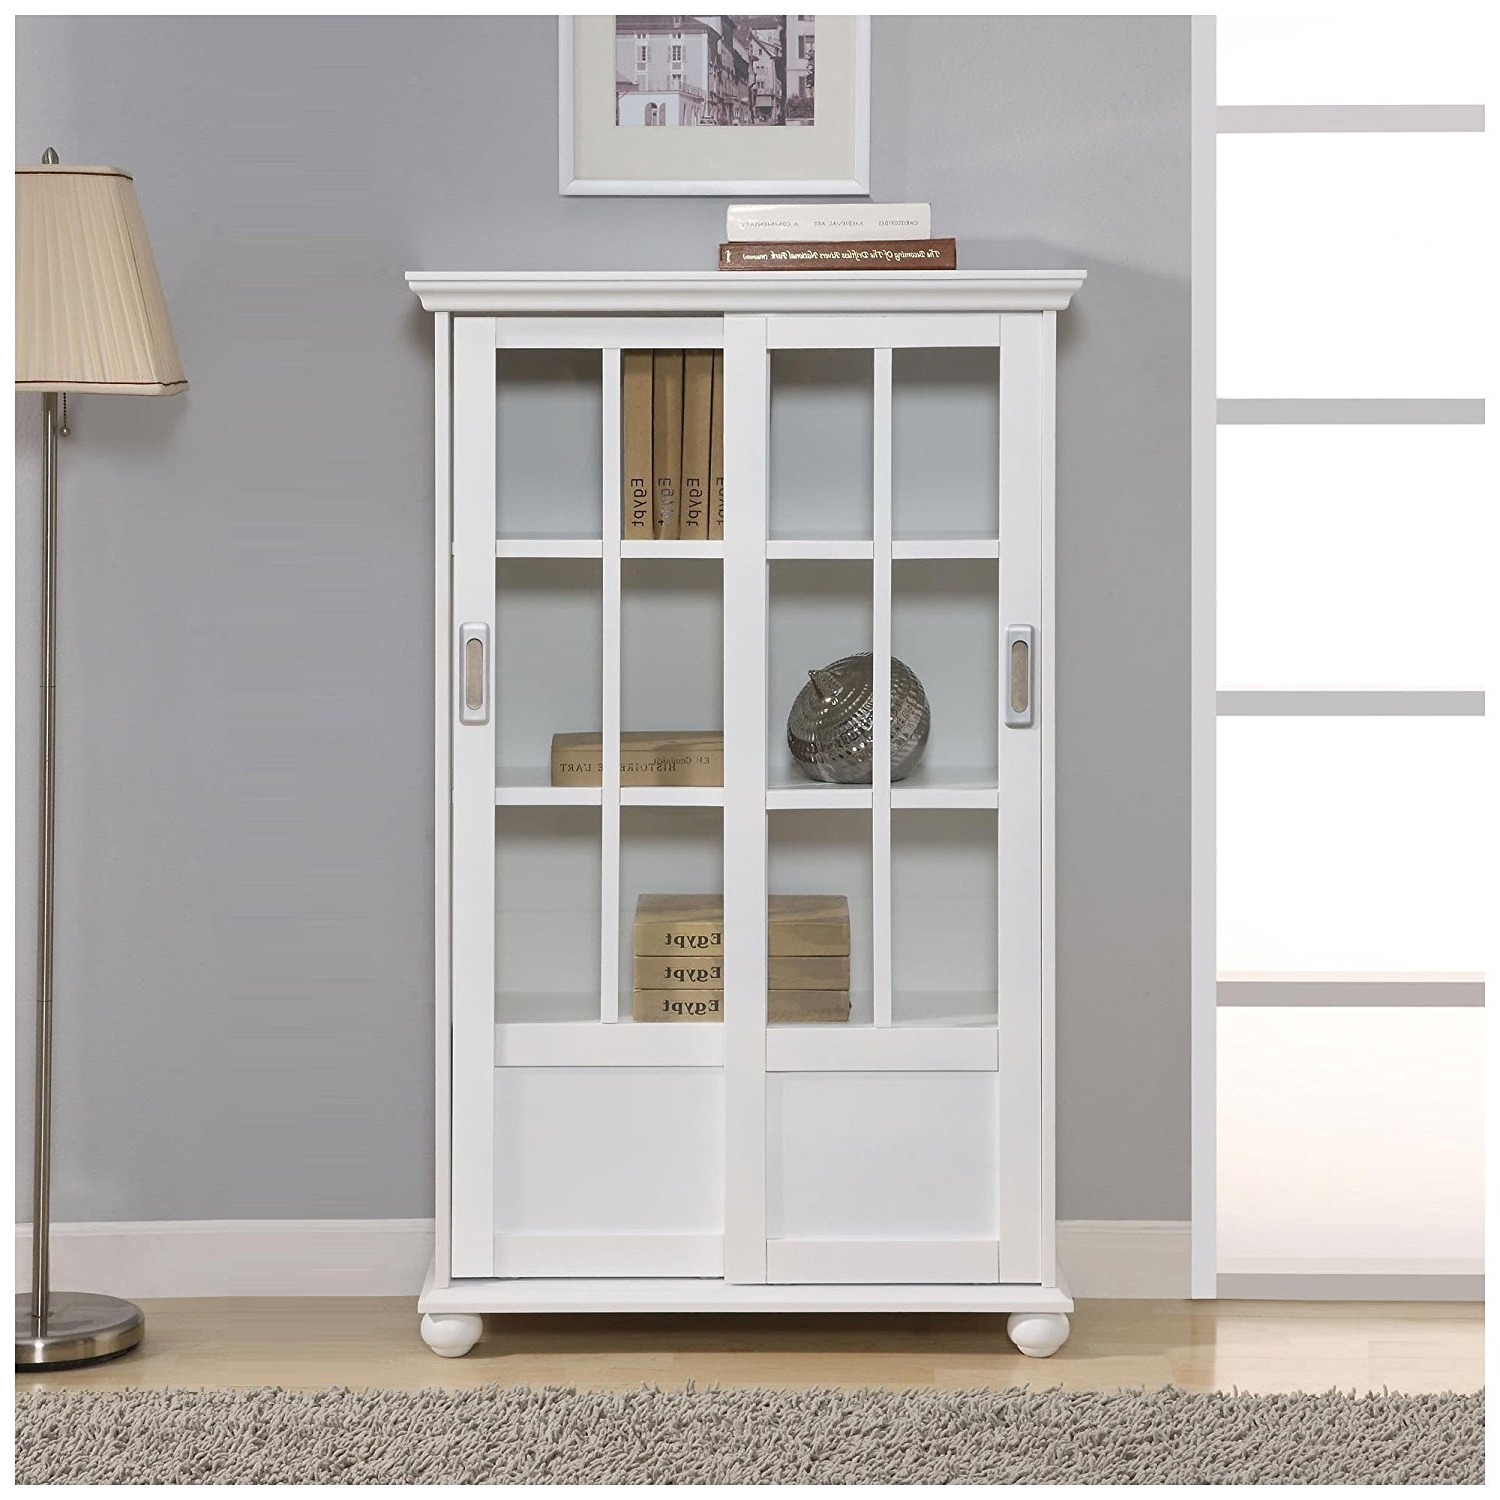 ebth bookcase org large sliding astonishing antique l glass door handballtunisie bookcases